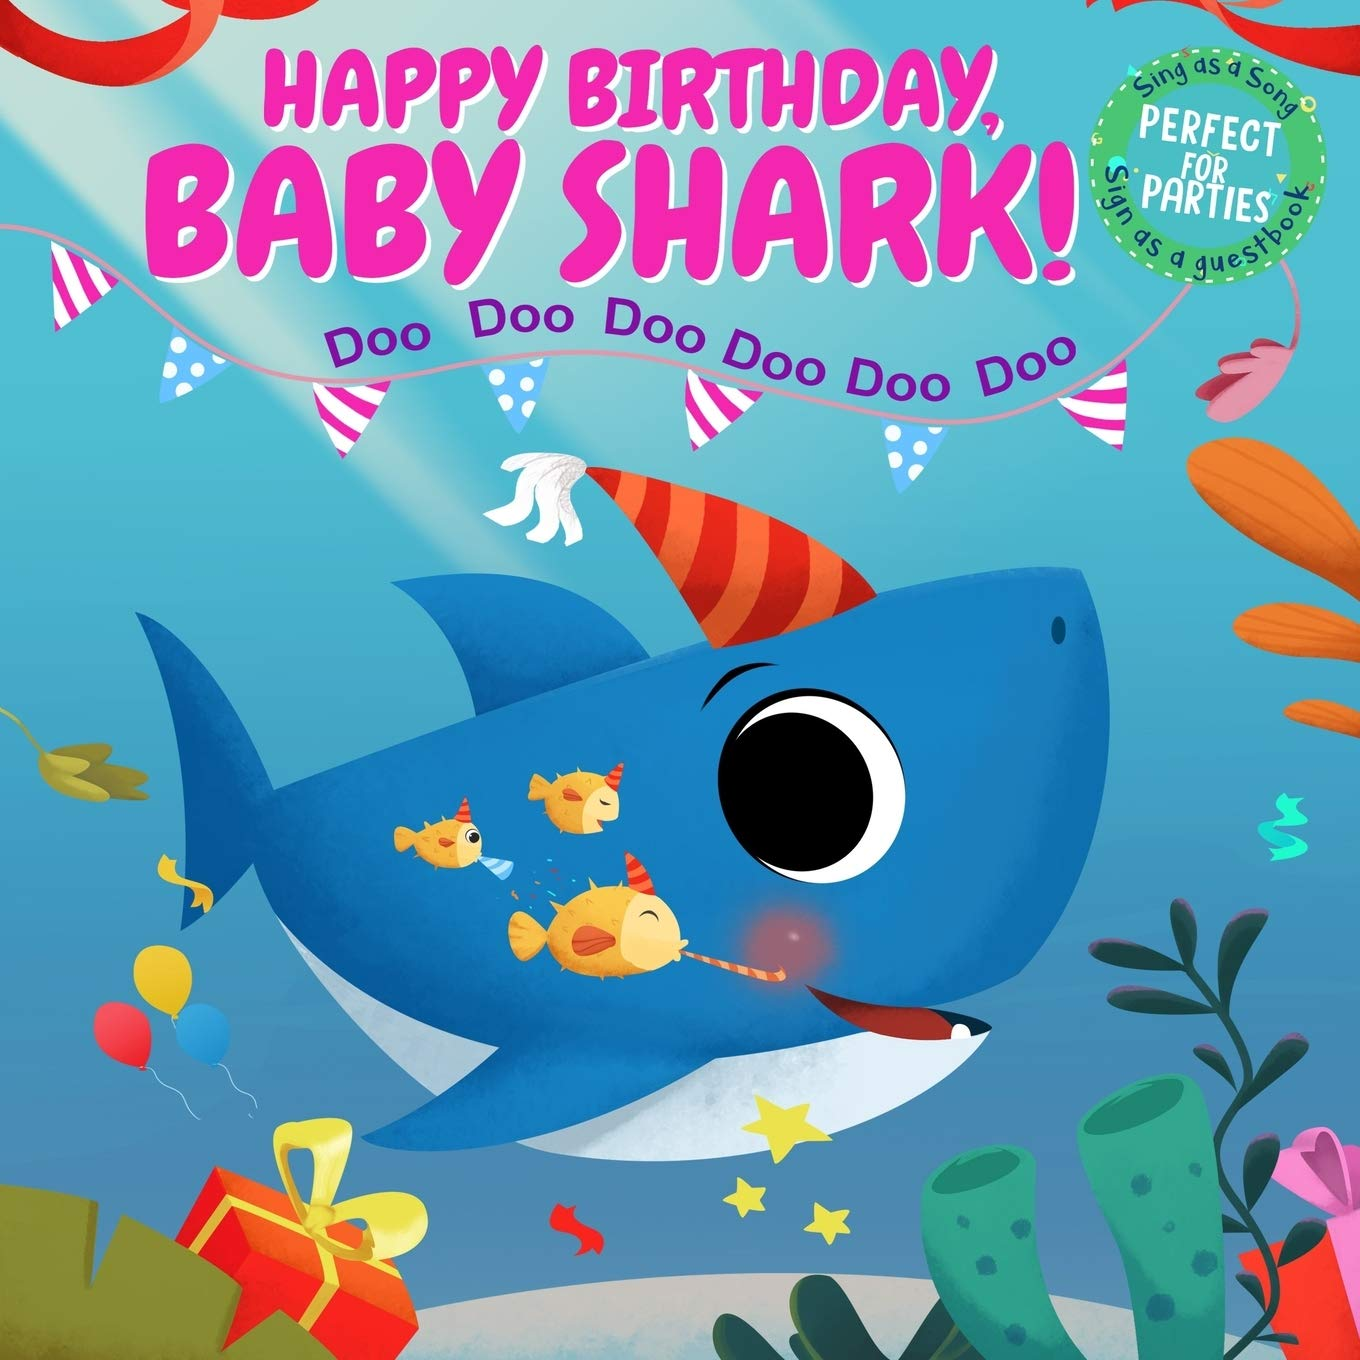 happy birthday baby shark sing as a